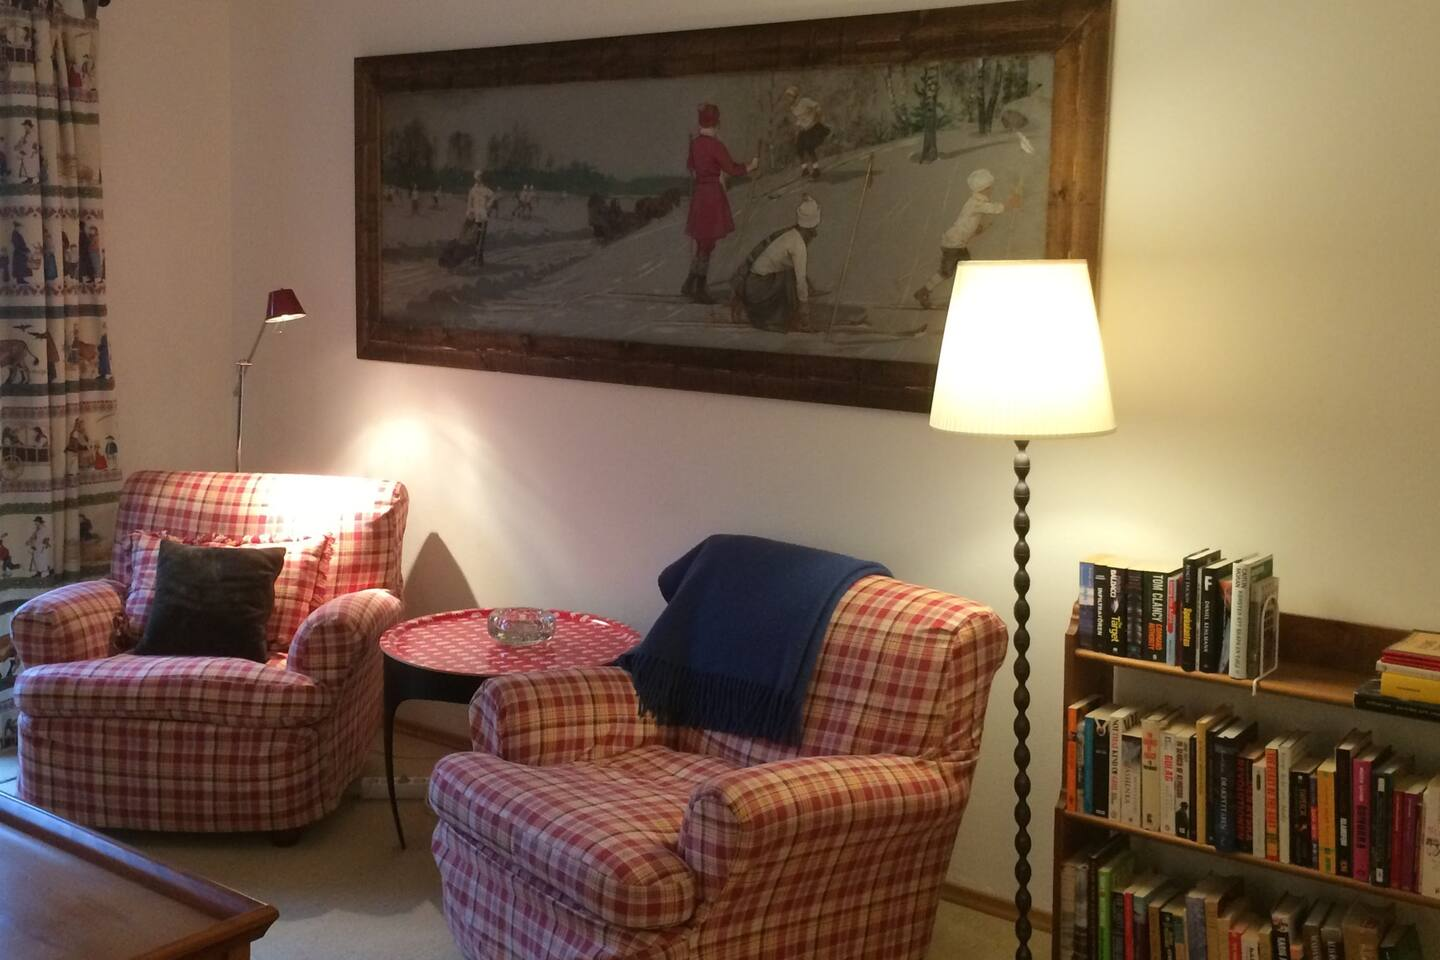 Comfortable living room with a large sofa, lounge chairs, balcony towards the village square and a small stove